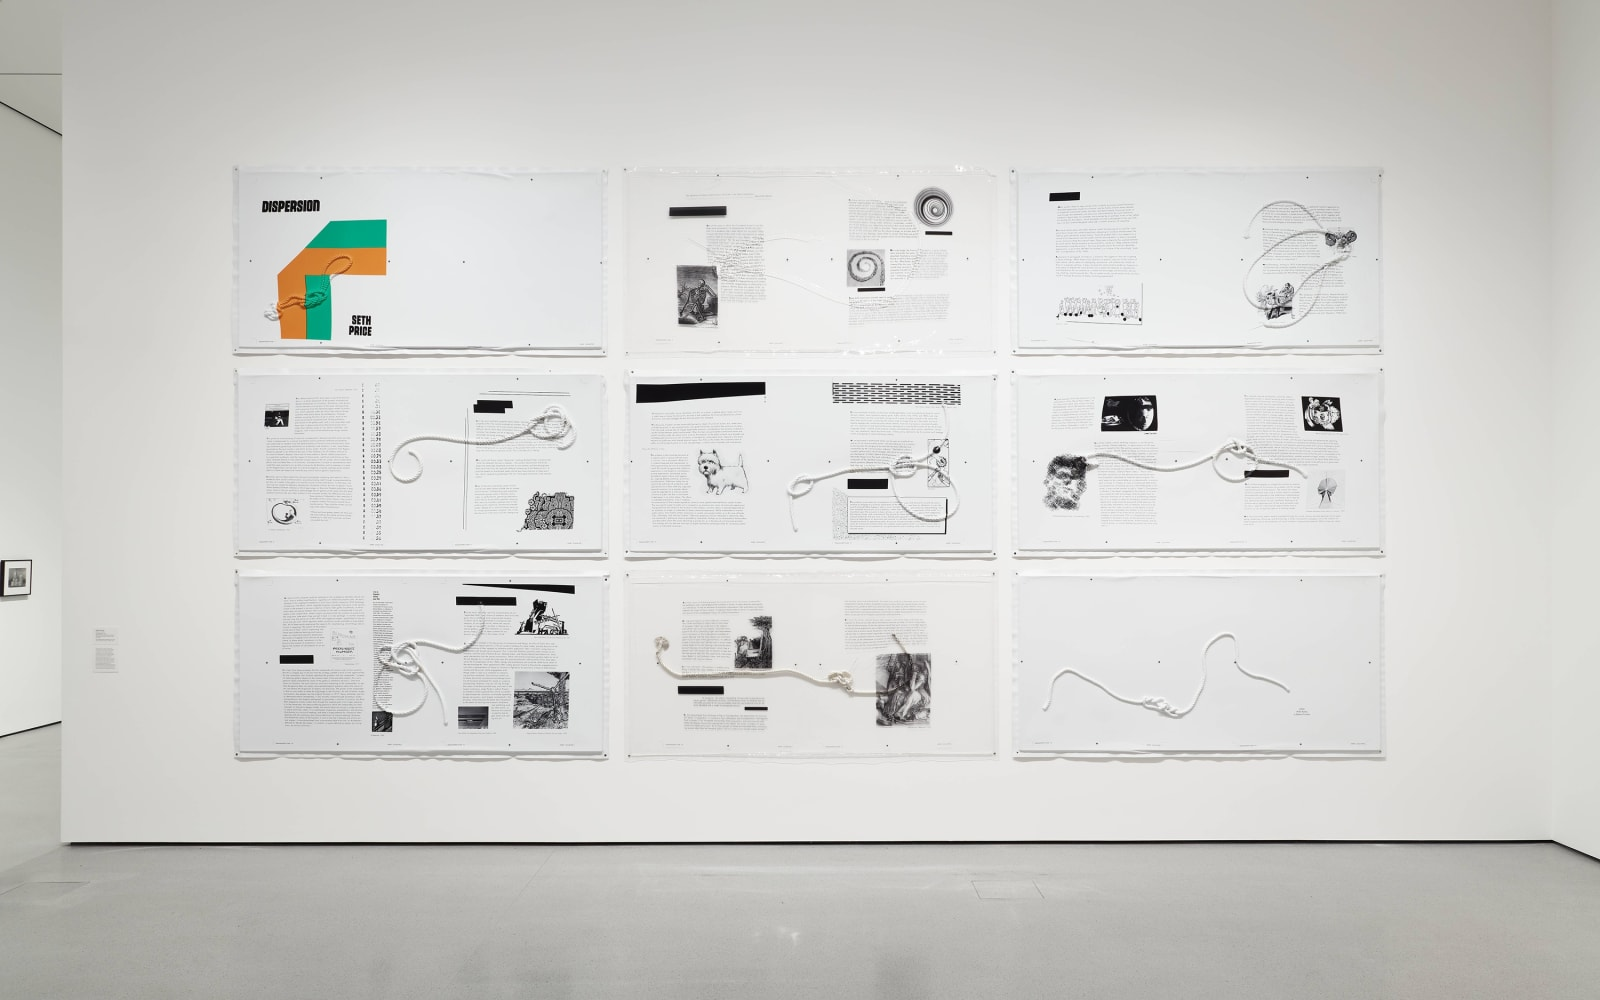 Collection 1970s - Present, Search Engines Gallery, 2020 Museum of Modern Art, New York Photo: Denis Doorley